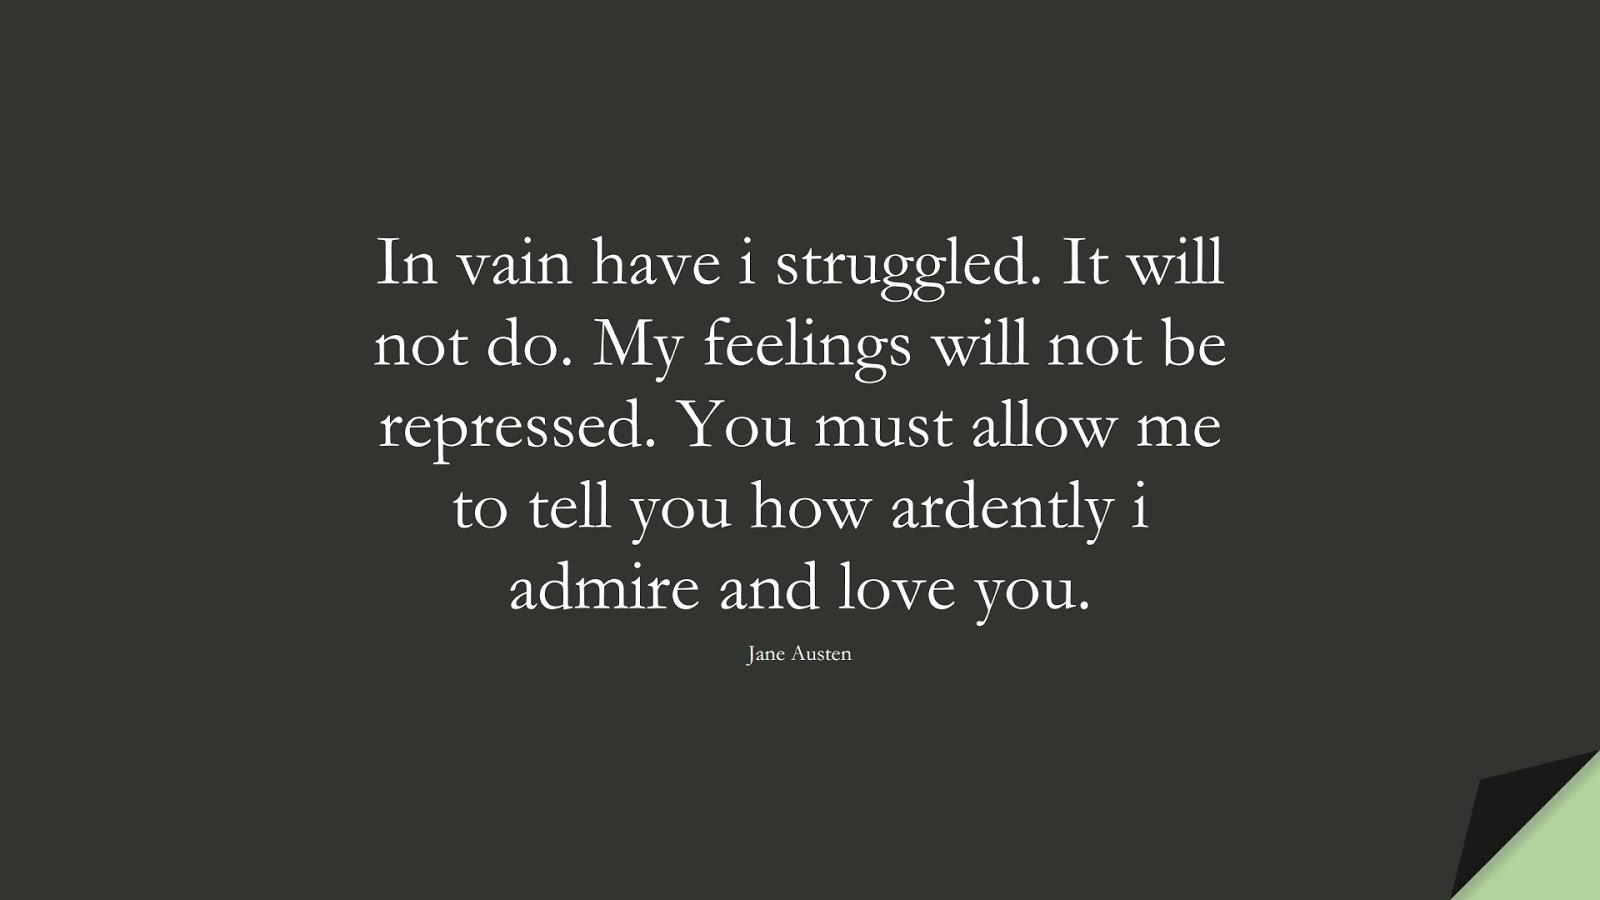 In vain have i struggled. It will not do. My feelings will not be repressed. You must allow me to tell you how ardently i admire and love you. (Jane Austen);  #LoveQuotes